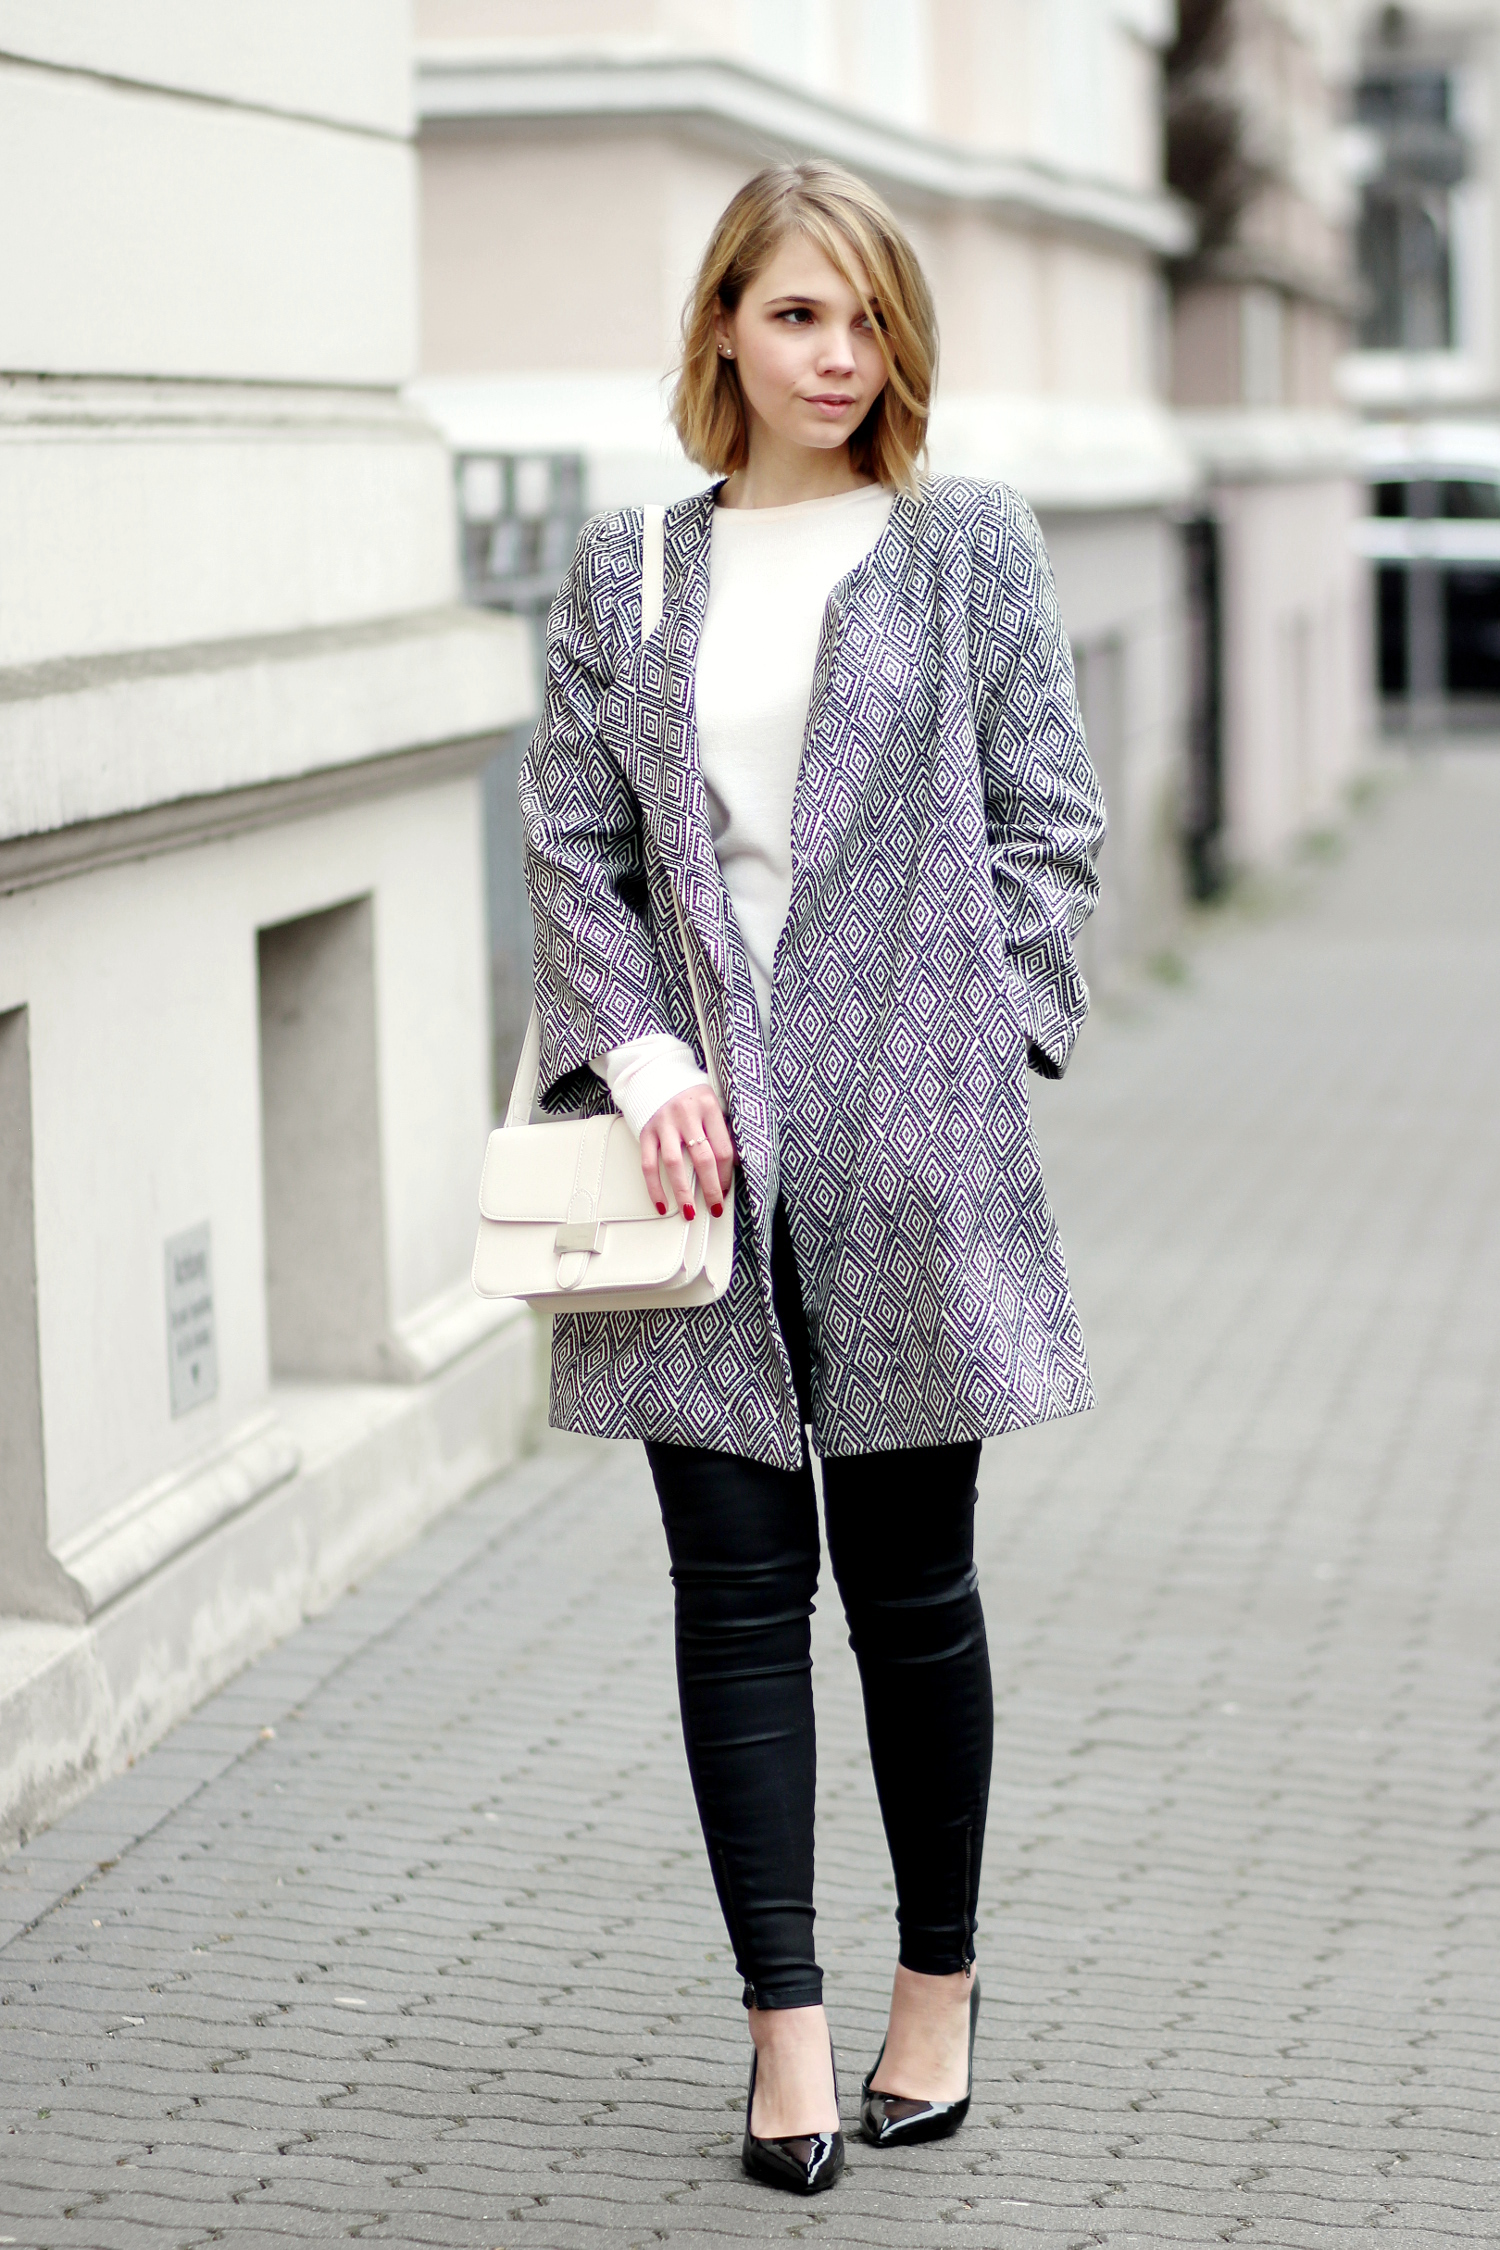 bezauberndenana-fashionblog-outfit-muster-mantel-schwarz-weiß-frühling-schwarze-hose-mango-lack-pumps-zara-rosa-pullover-reserved-streetstyle (6)